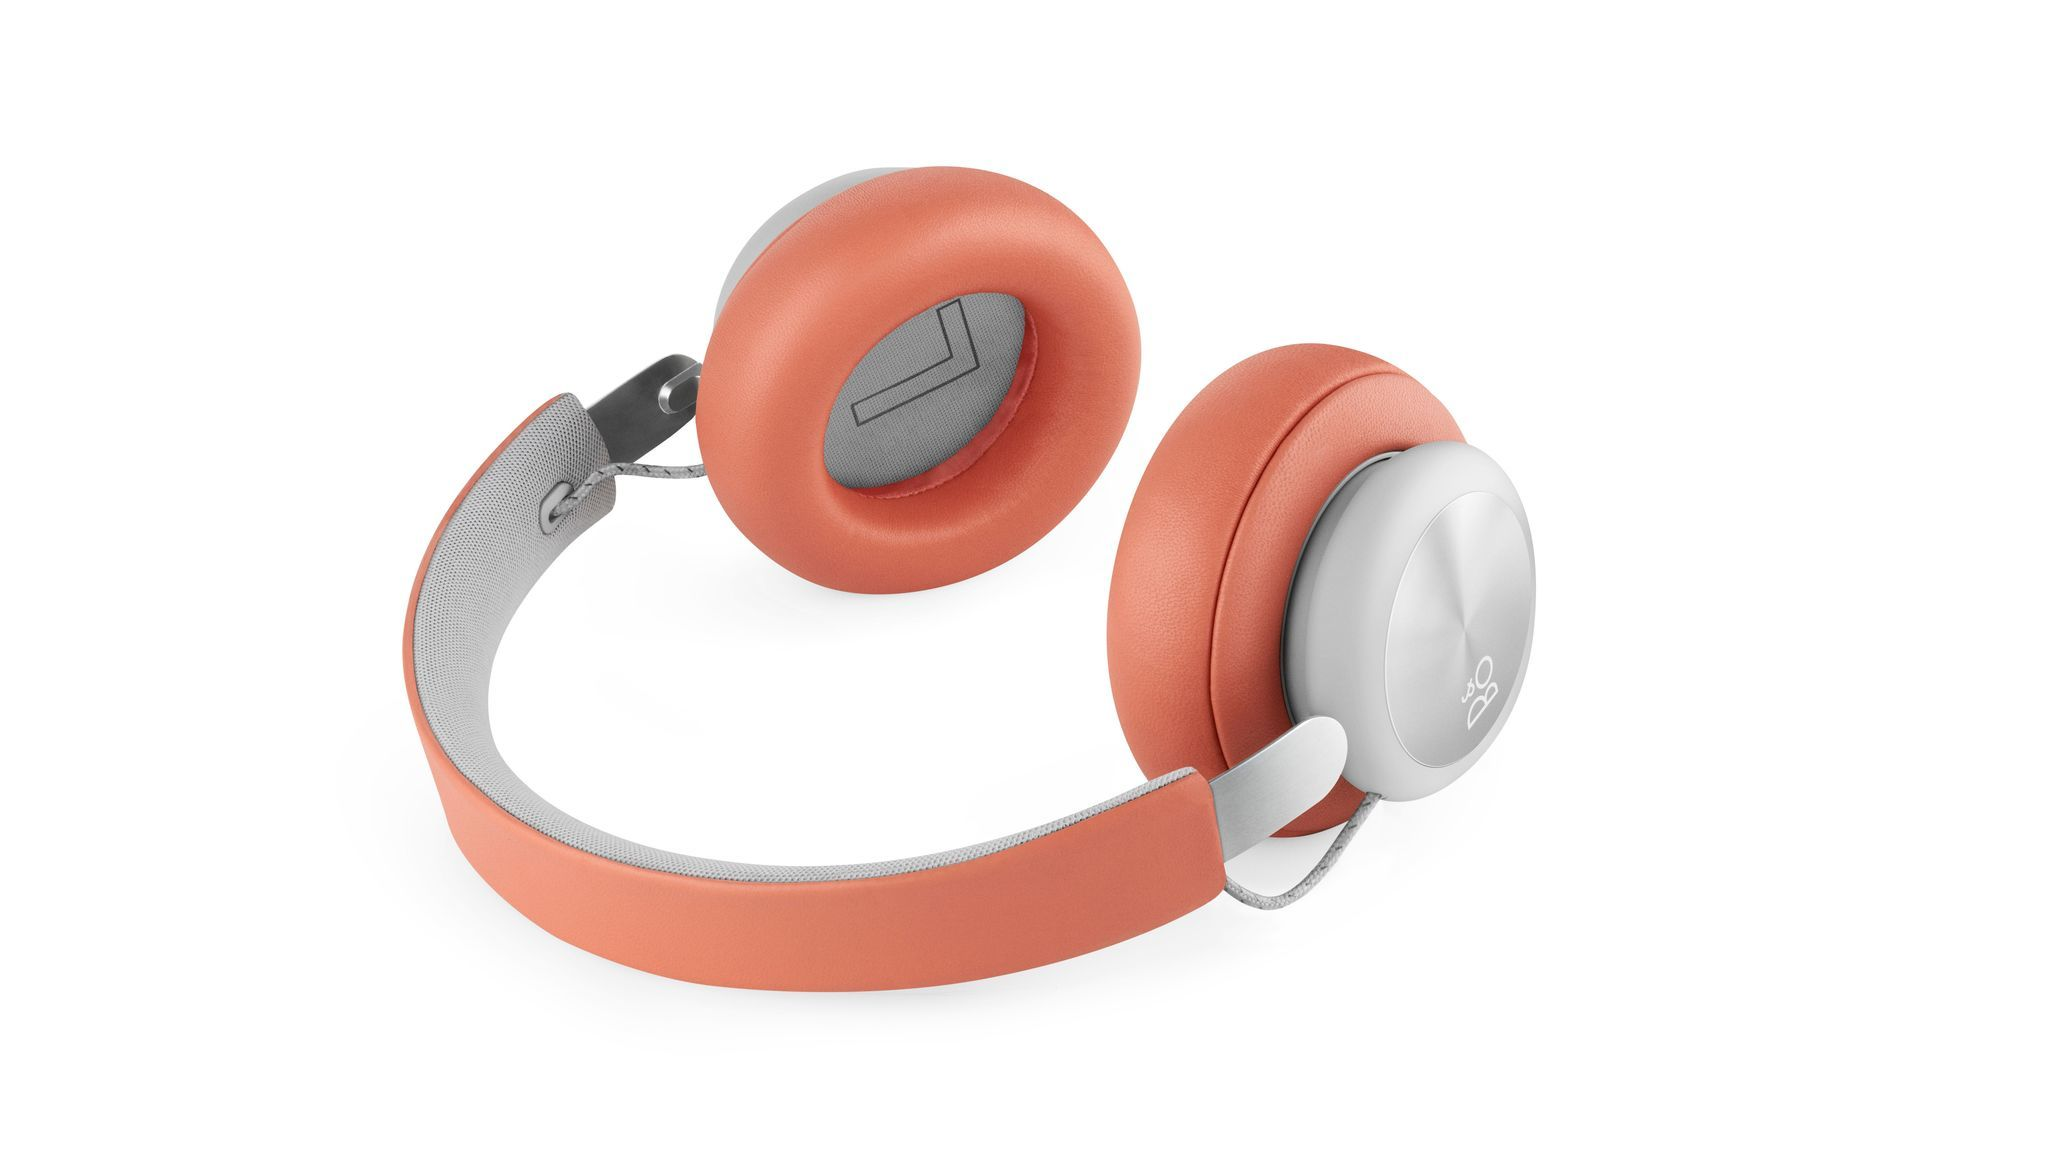 B&O Play Beoplay H4 in tangerine.